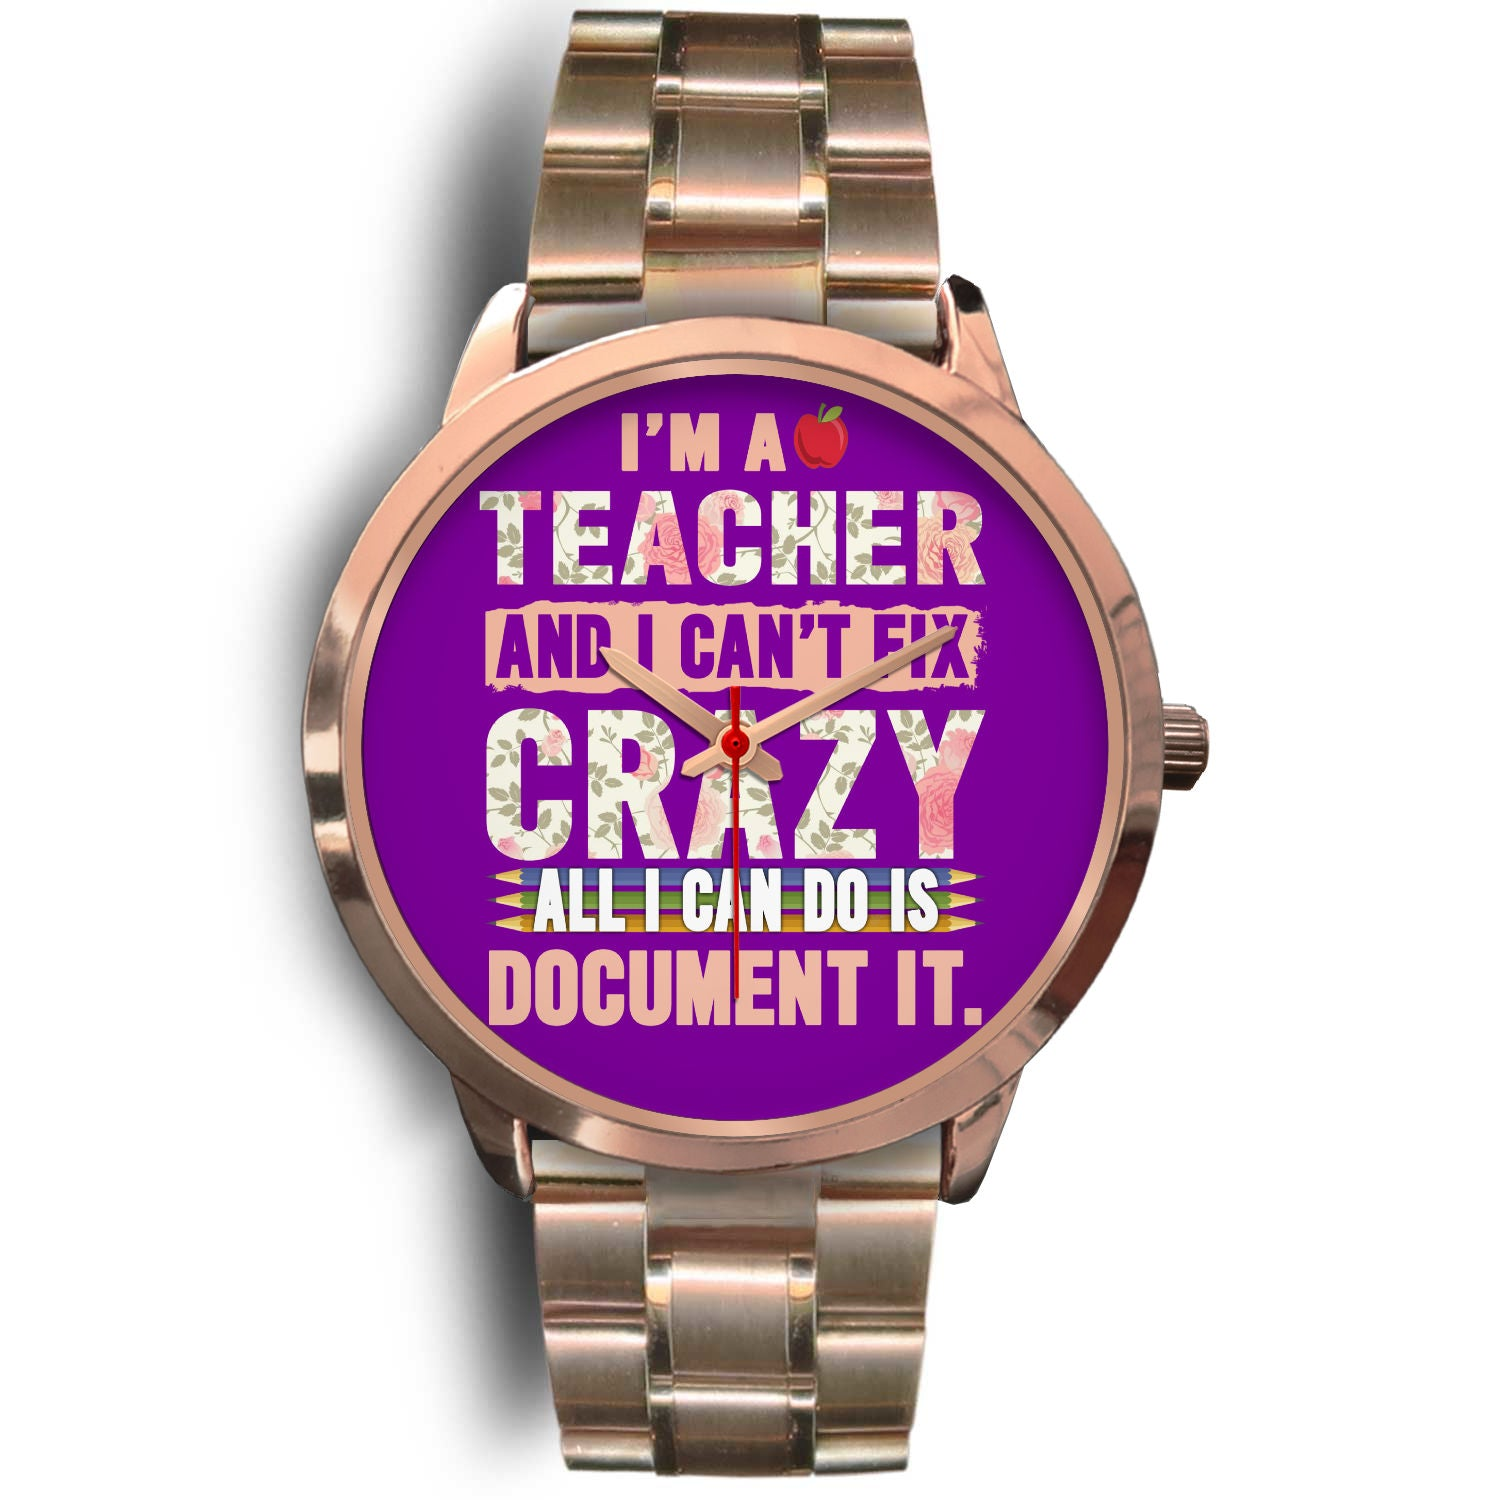 VIRA rose gold stainless steel watch for awesome teachers